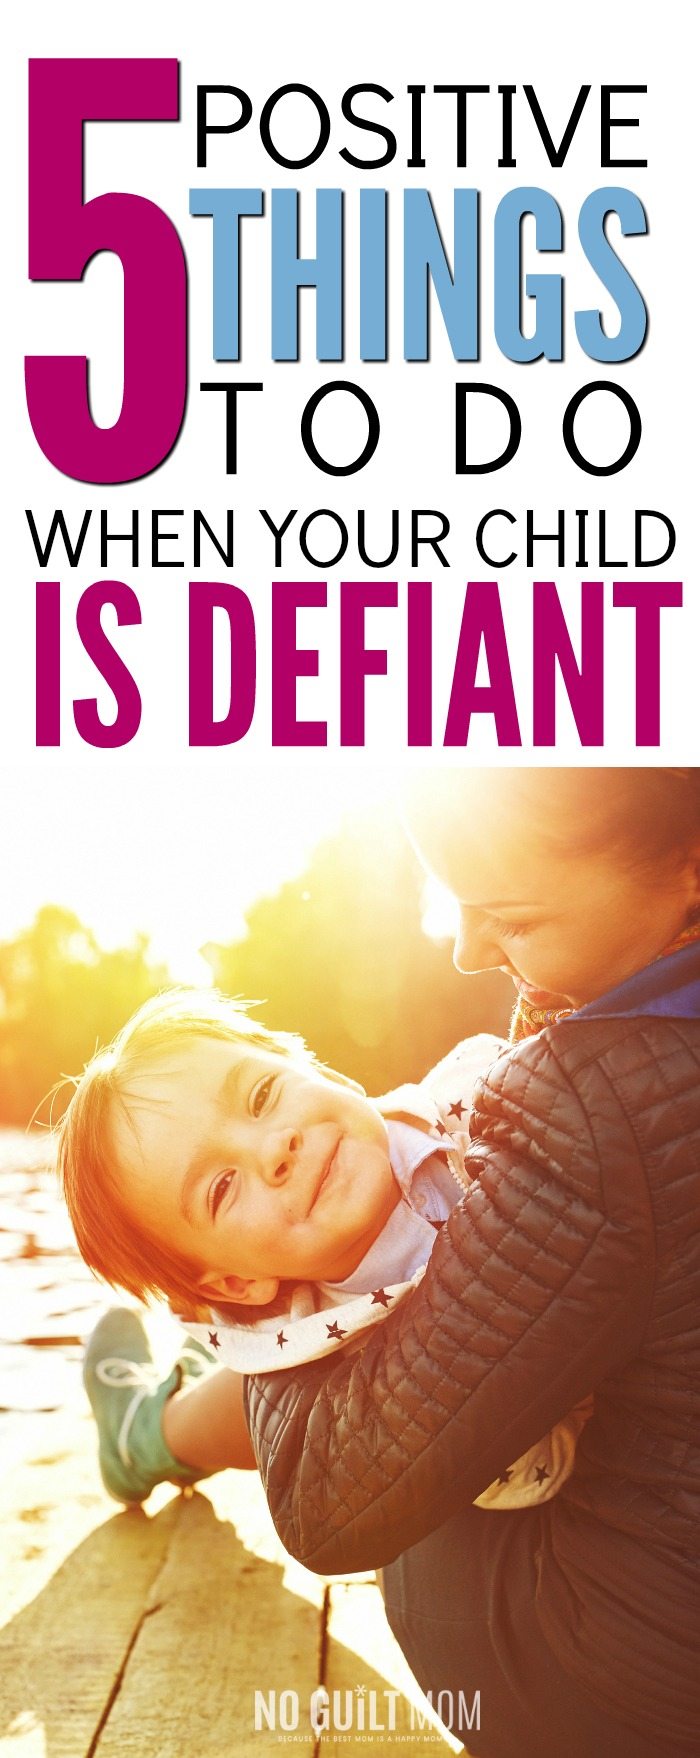 Dealing with defiant children can cause us moms to freeze. These simple positive parenting tips will help you stay calm and avoid yelling, Works for whenever your child does the opposite of what told. #positivediscipline #positiveparenting #parentingtips #parenting